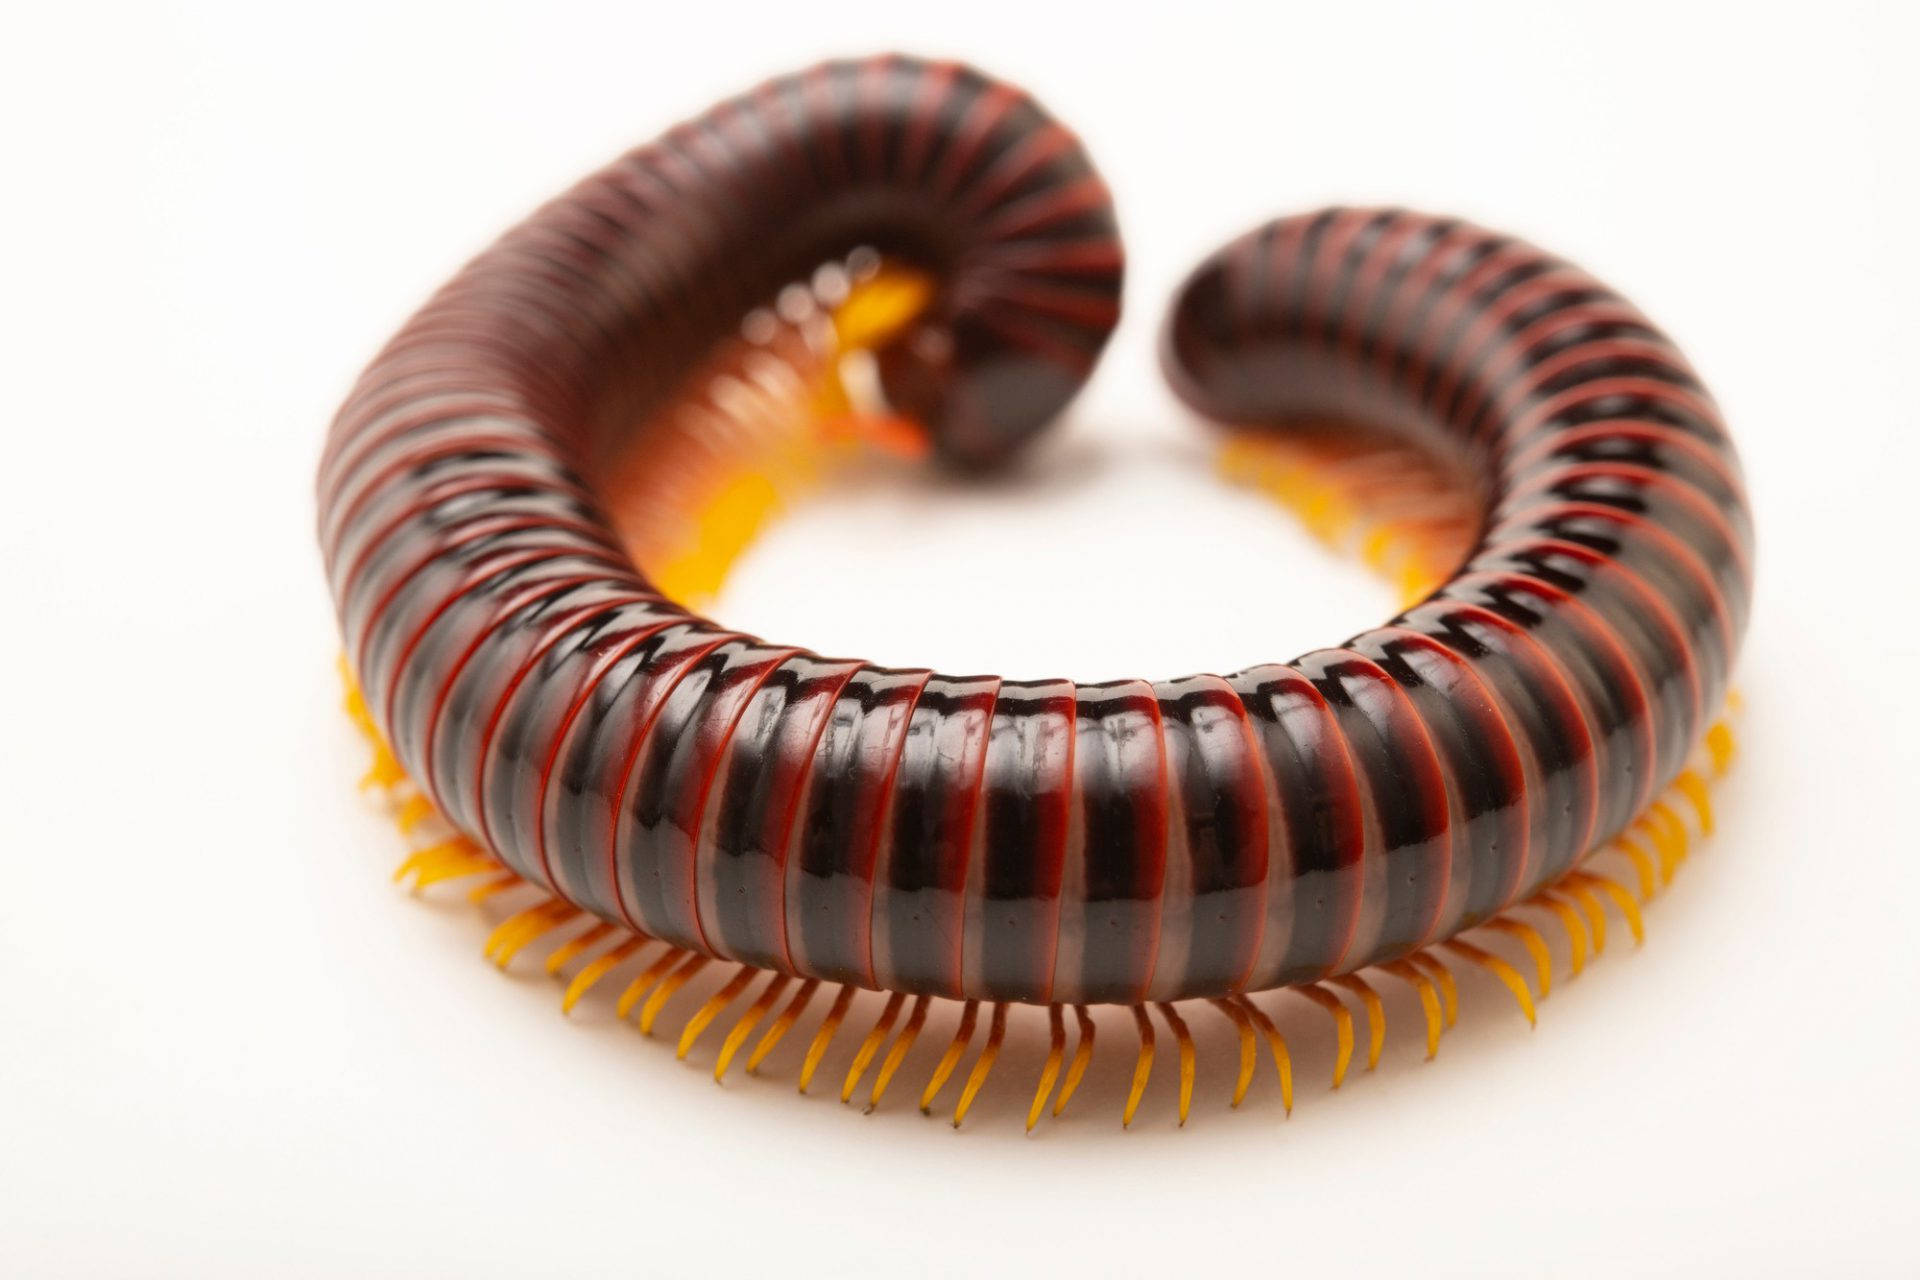 Photo: An unidentified wild caught millipede collected on the grounds of the University of the Philippines.